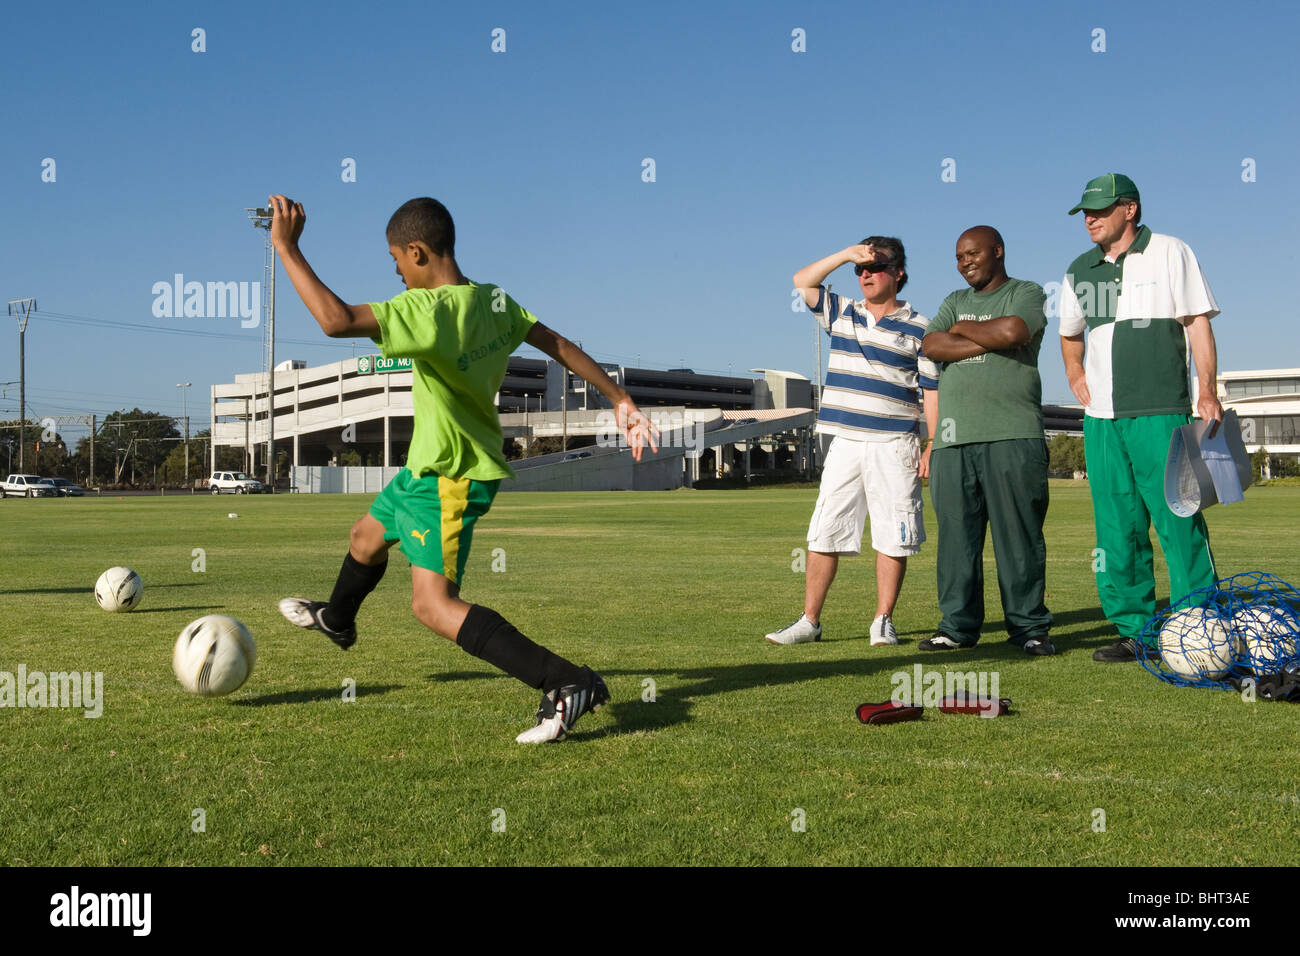 Club Mangers watching training at Old Mutual Football Academy, Cape Town, South Africa - Stock Image